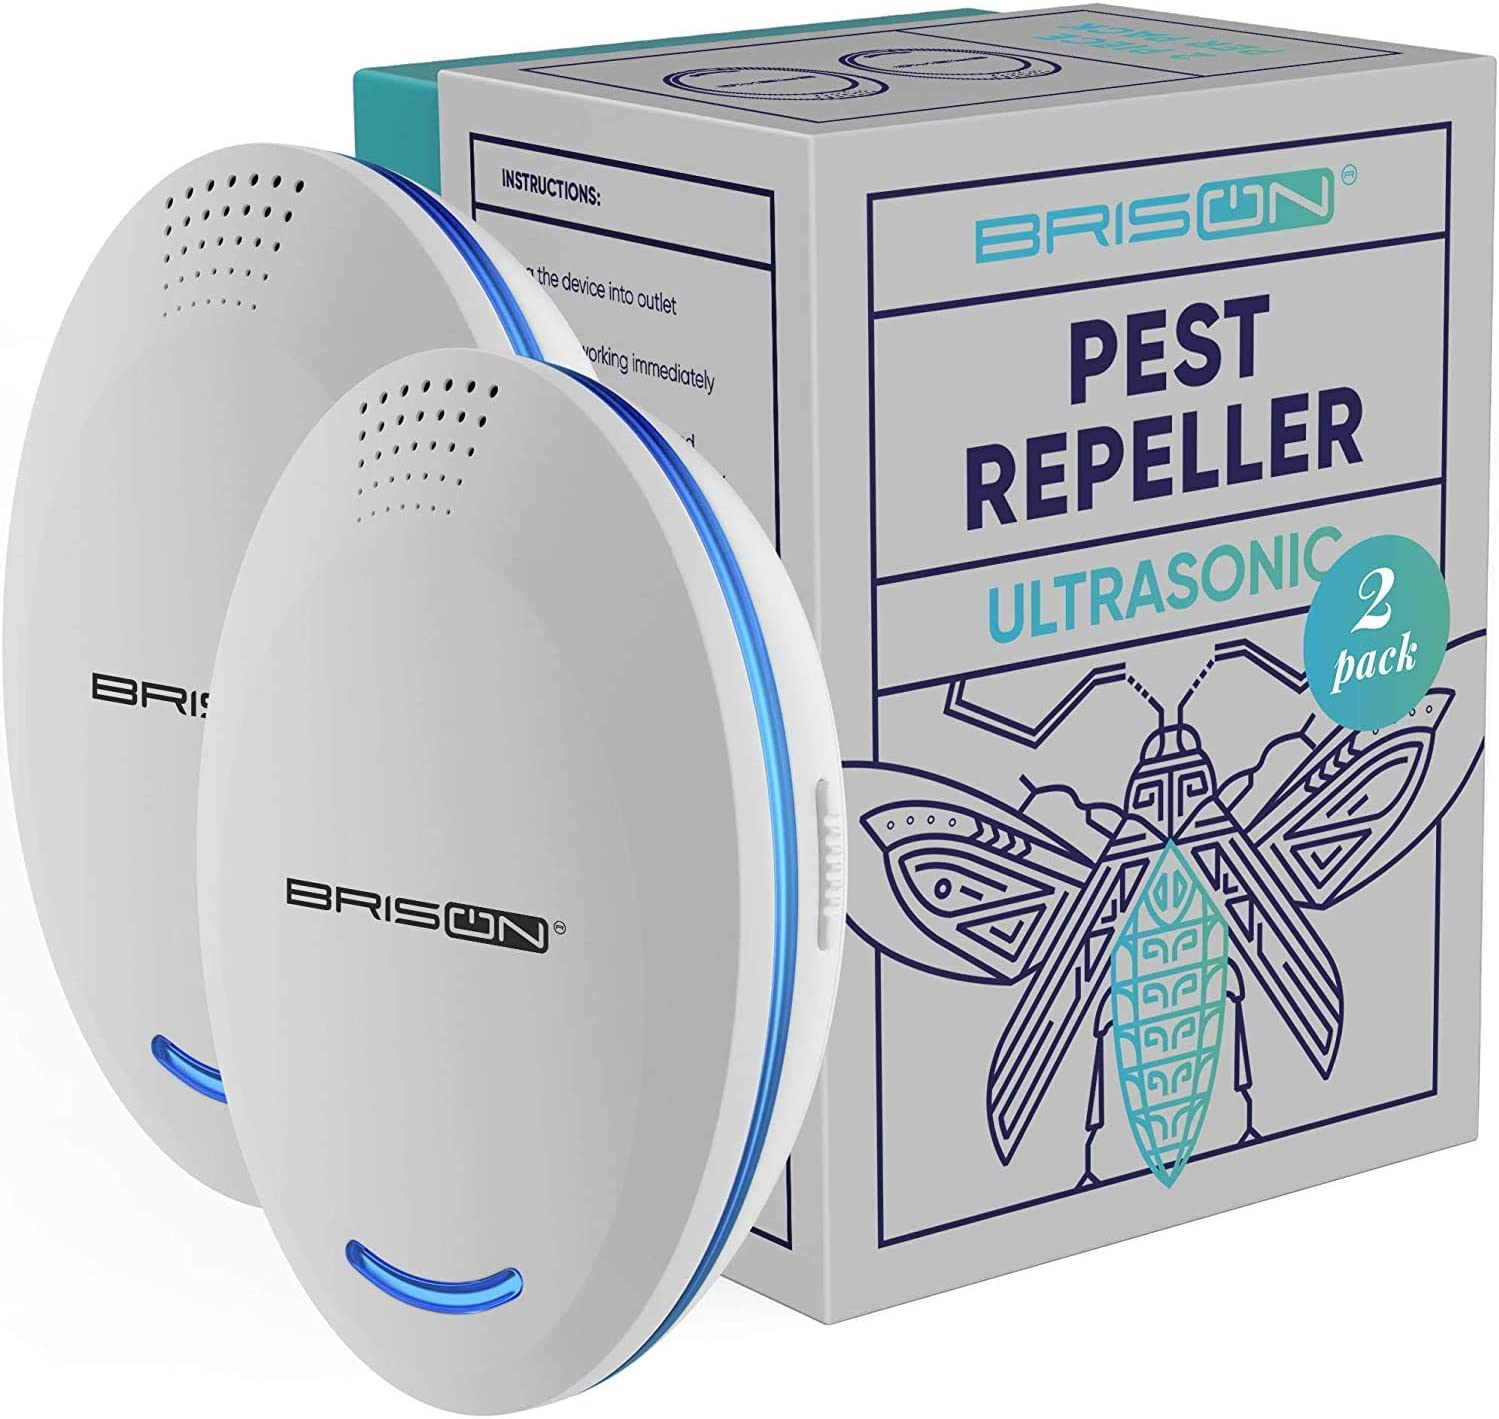 BRISON Ultrasonic Pest Repeller Plug-in Control Electronic Insect Repellent